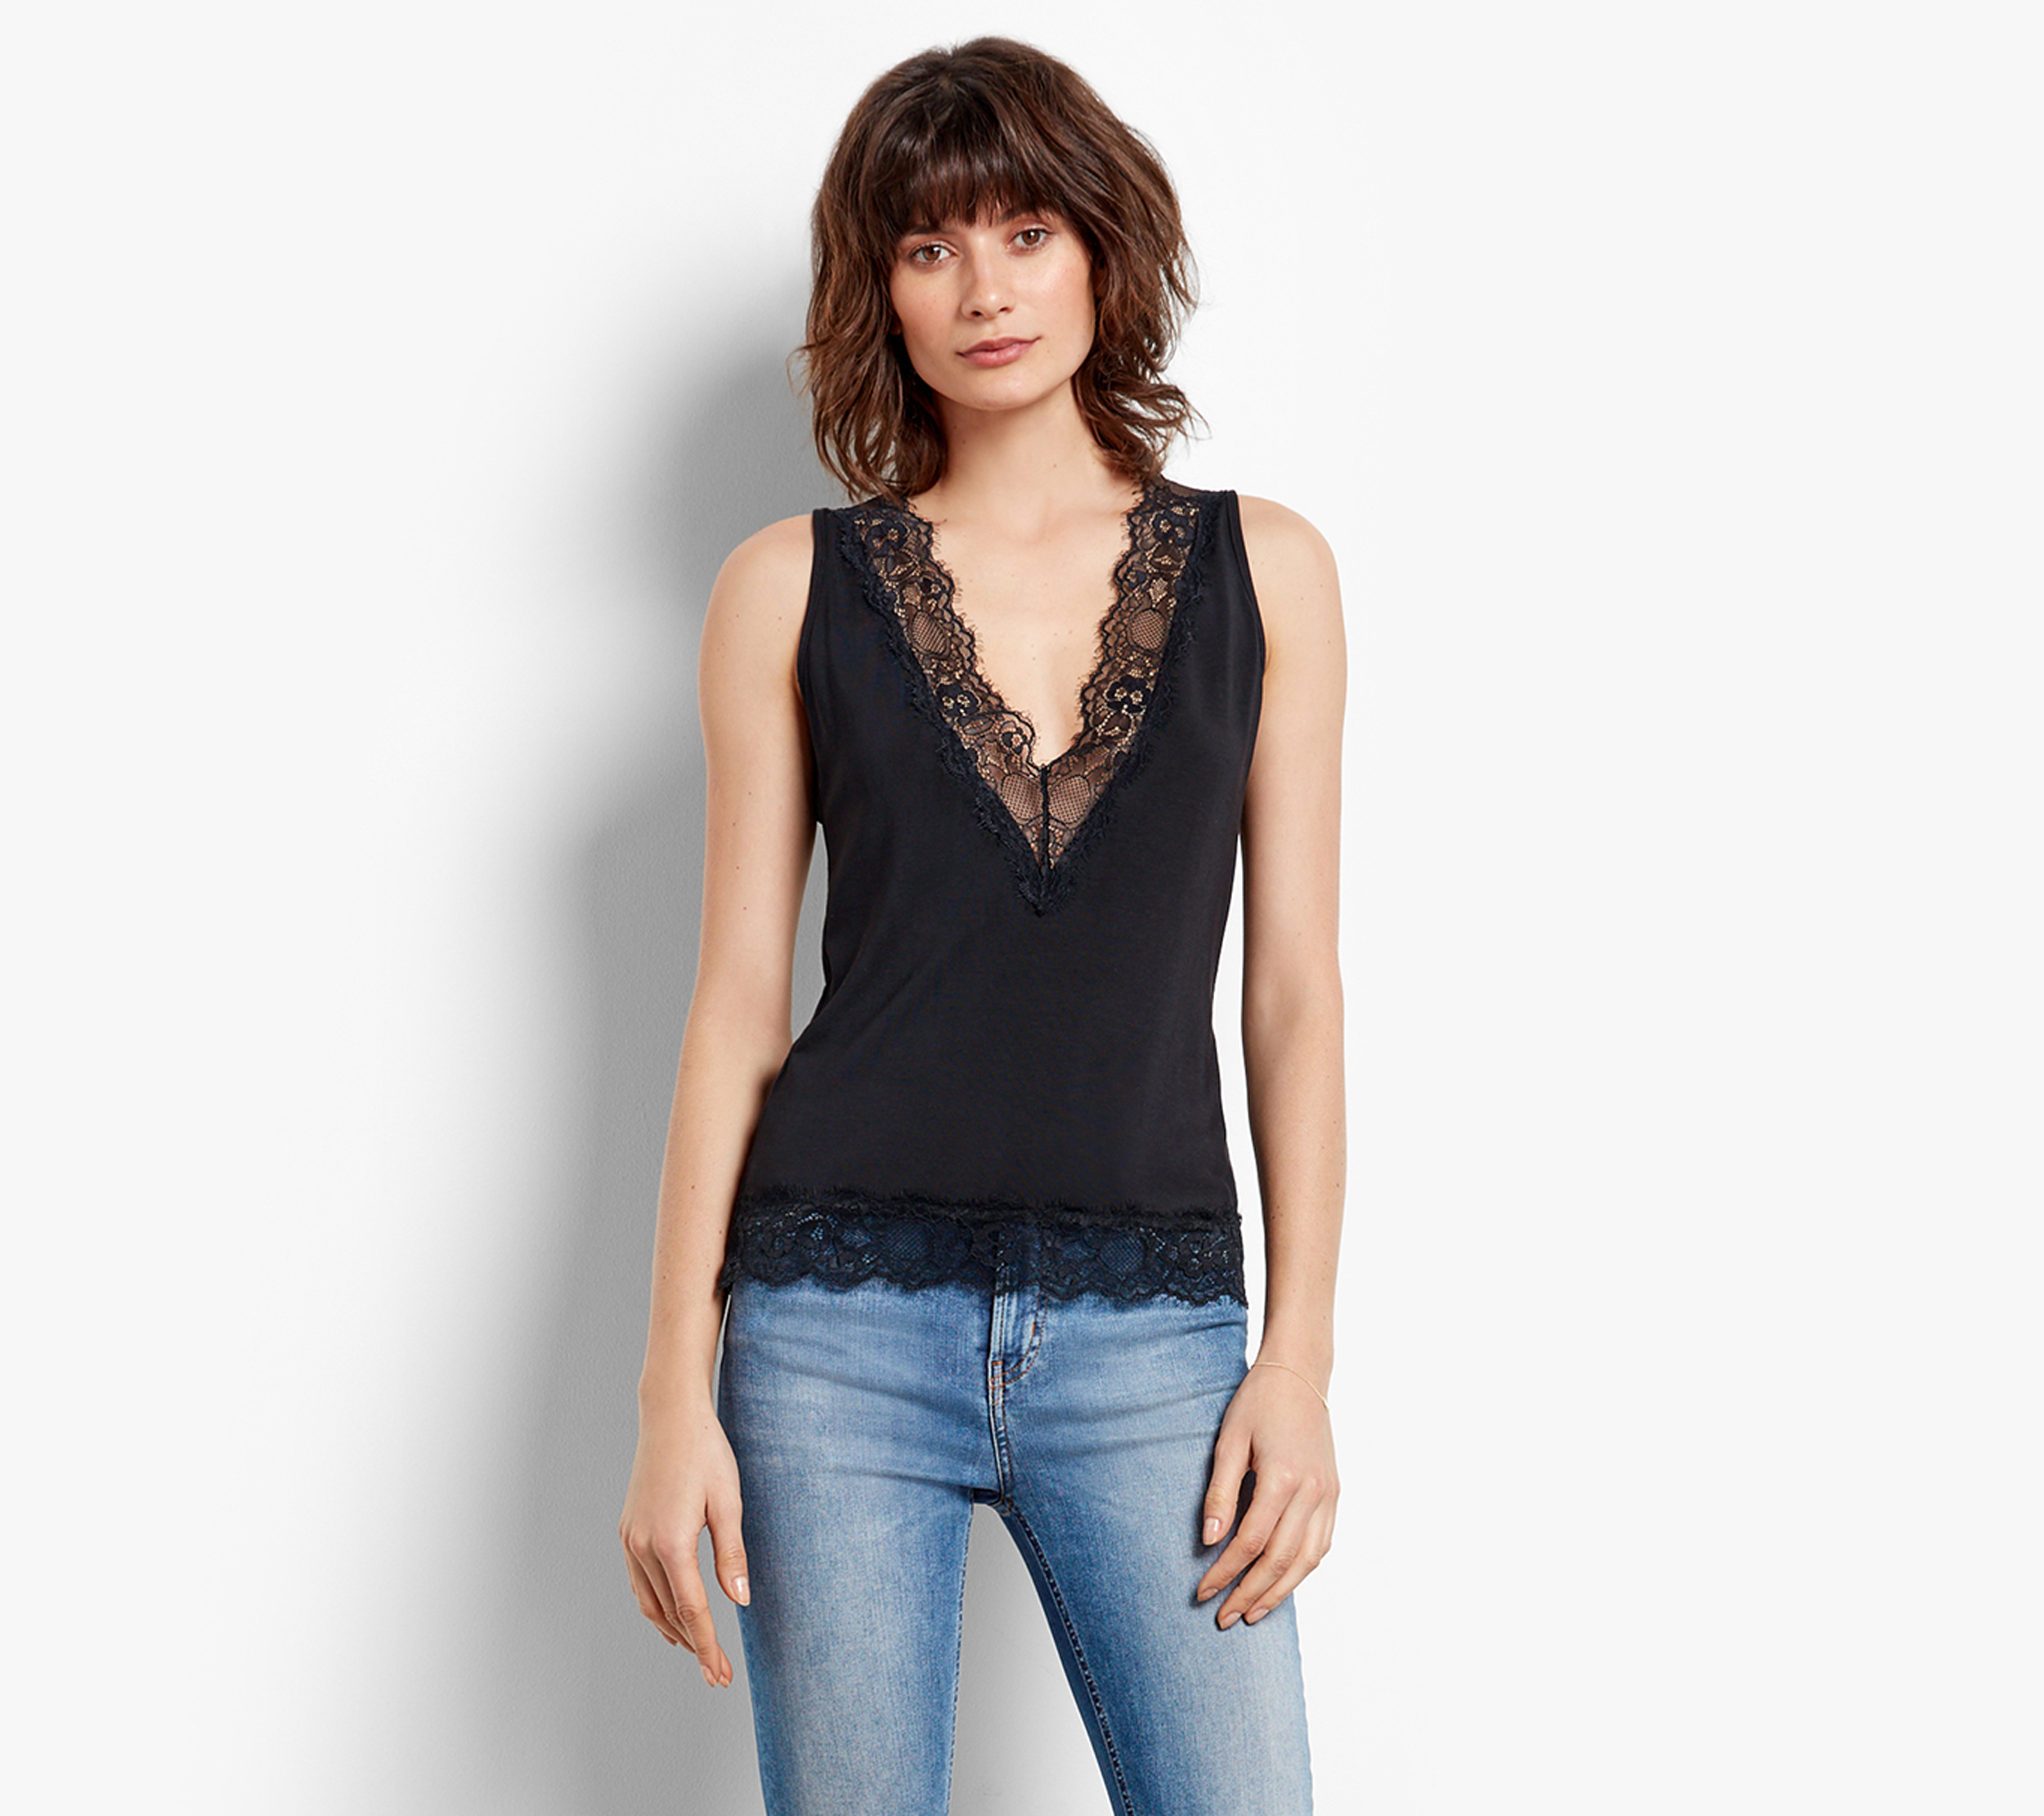 Hush Black Peek A Boo Top, £35/AED156.85; Holly Cropped Jeans, £65/AED291.29